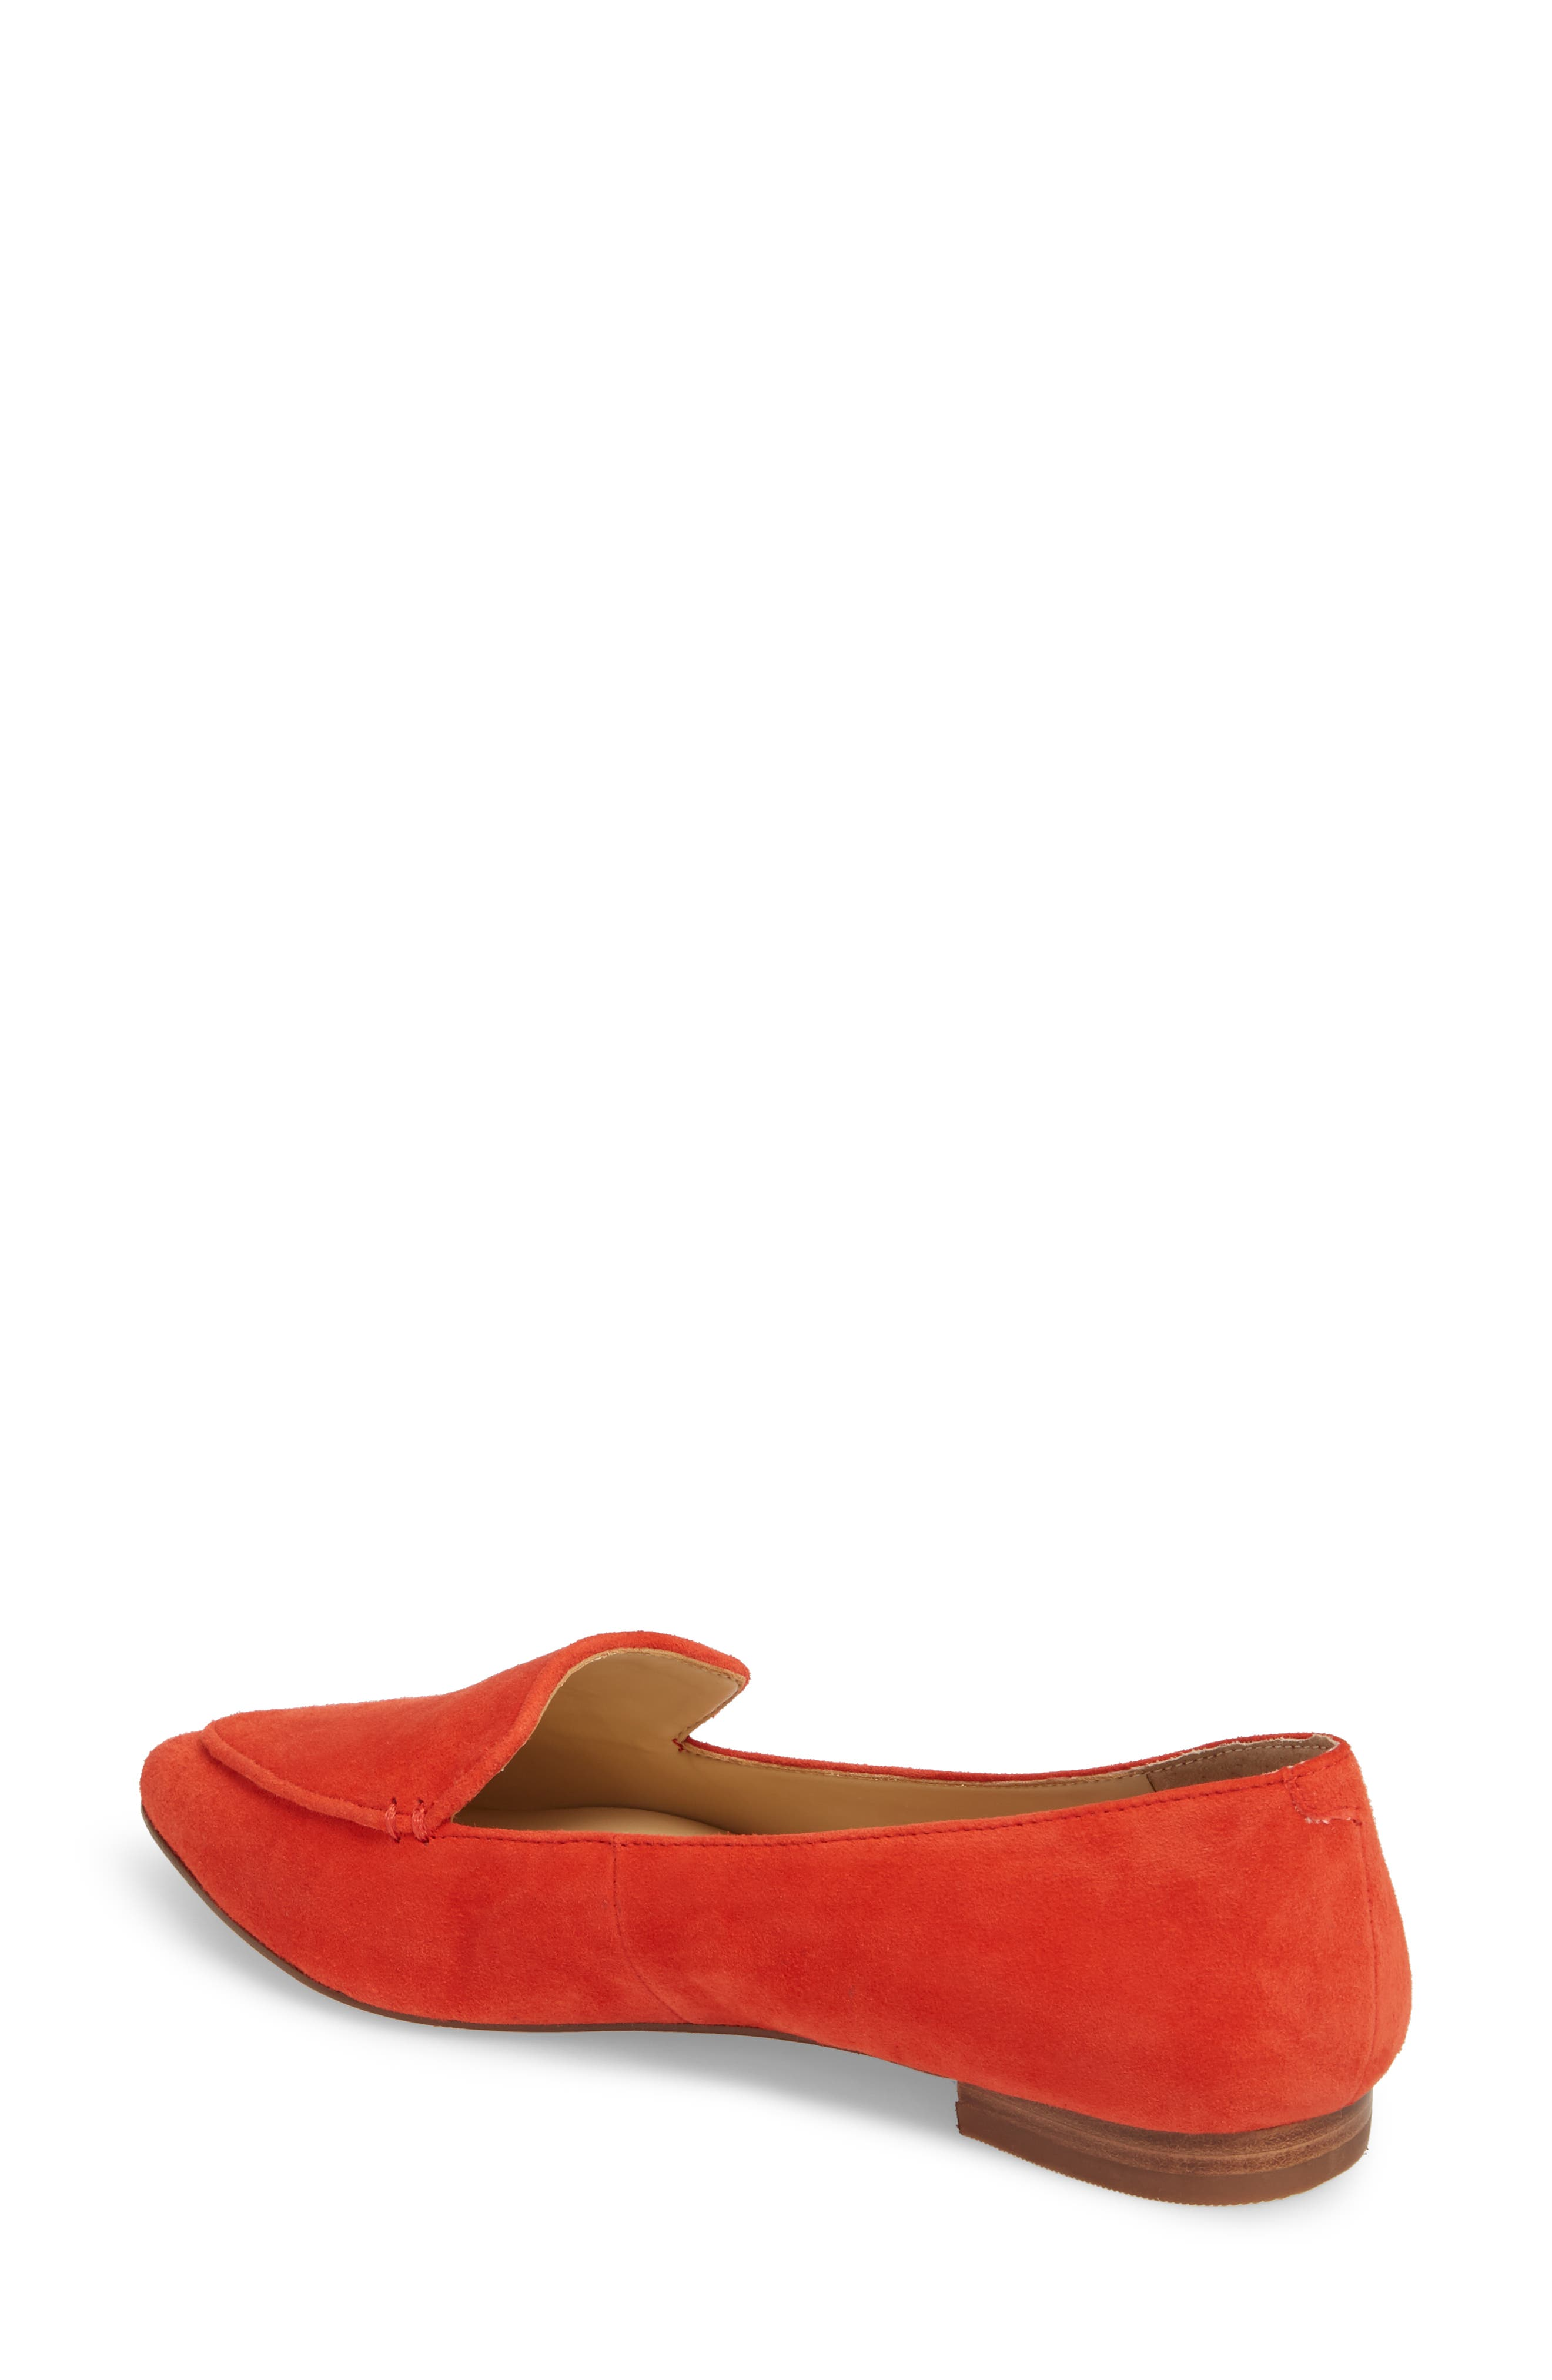 'Cammila' Pointy Toe Loafer,                             Alternate thumbnail 2, color,                             Deep Coral